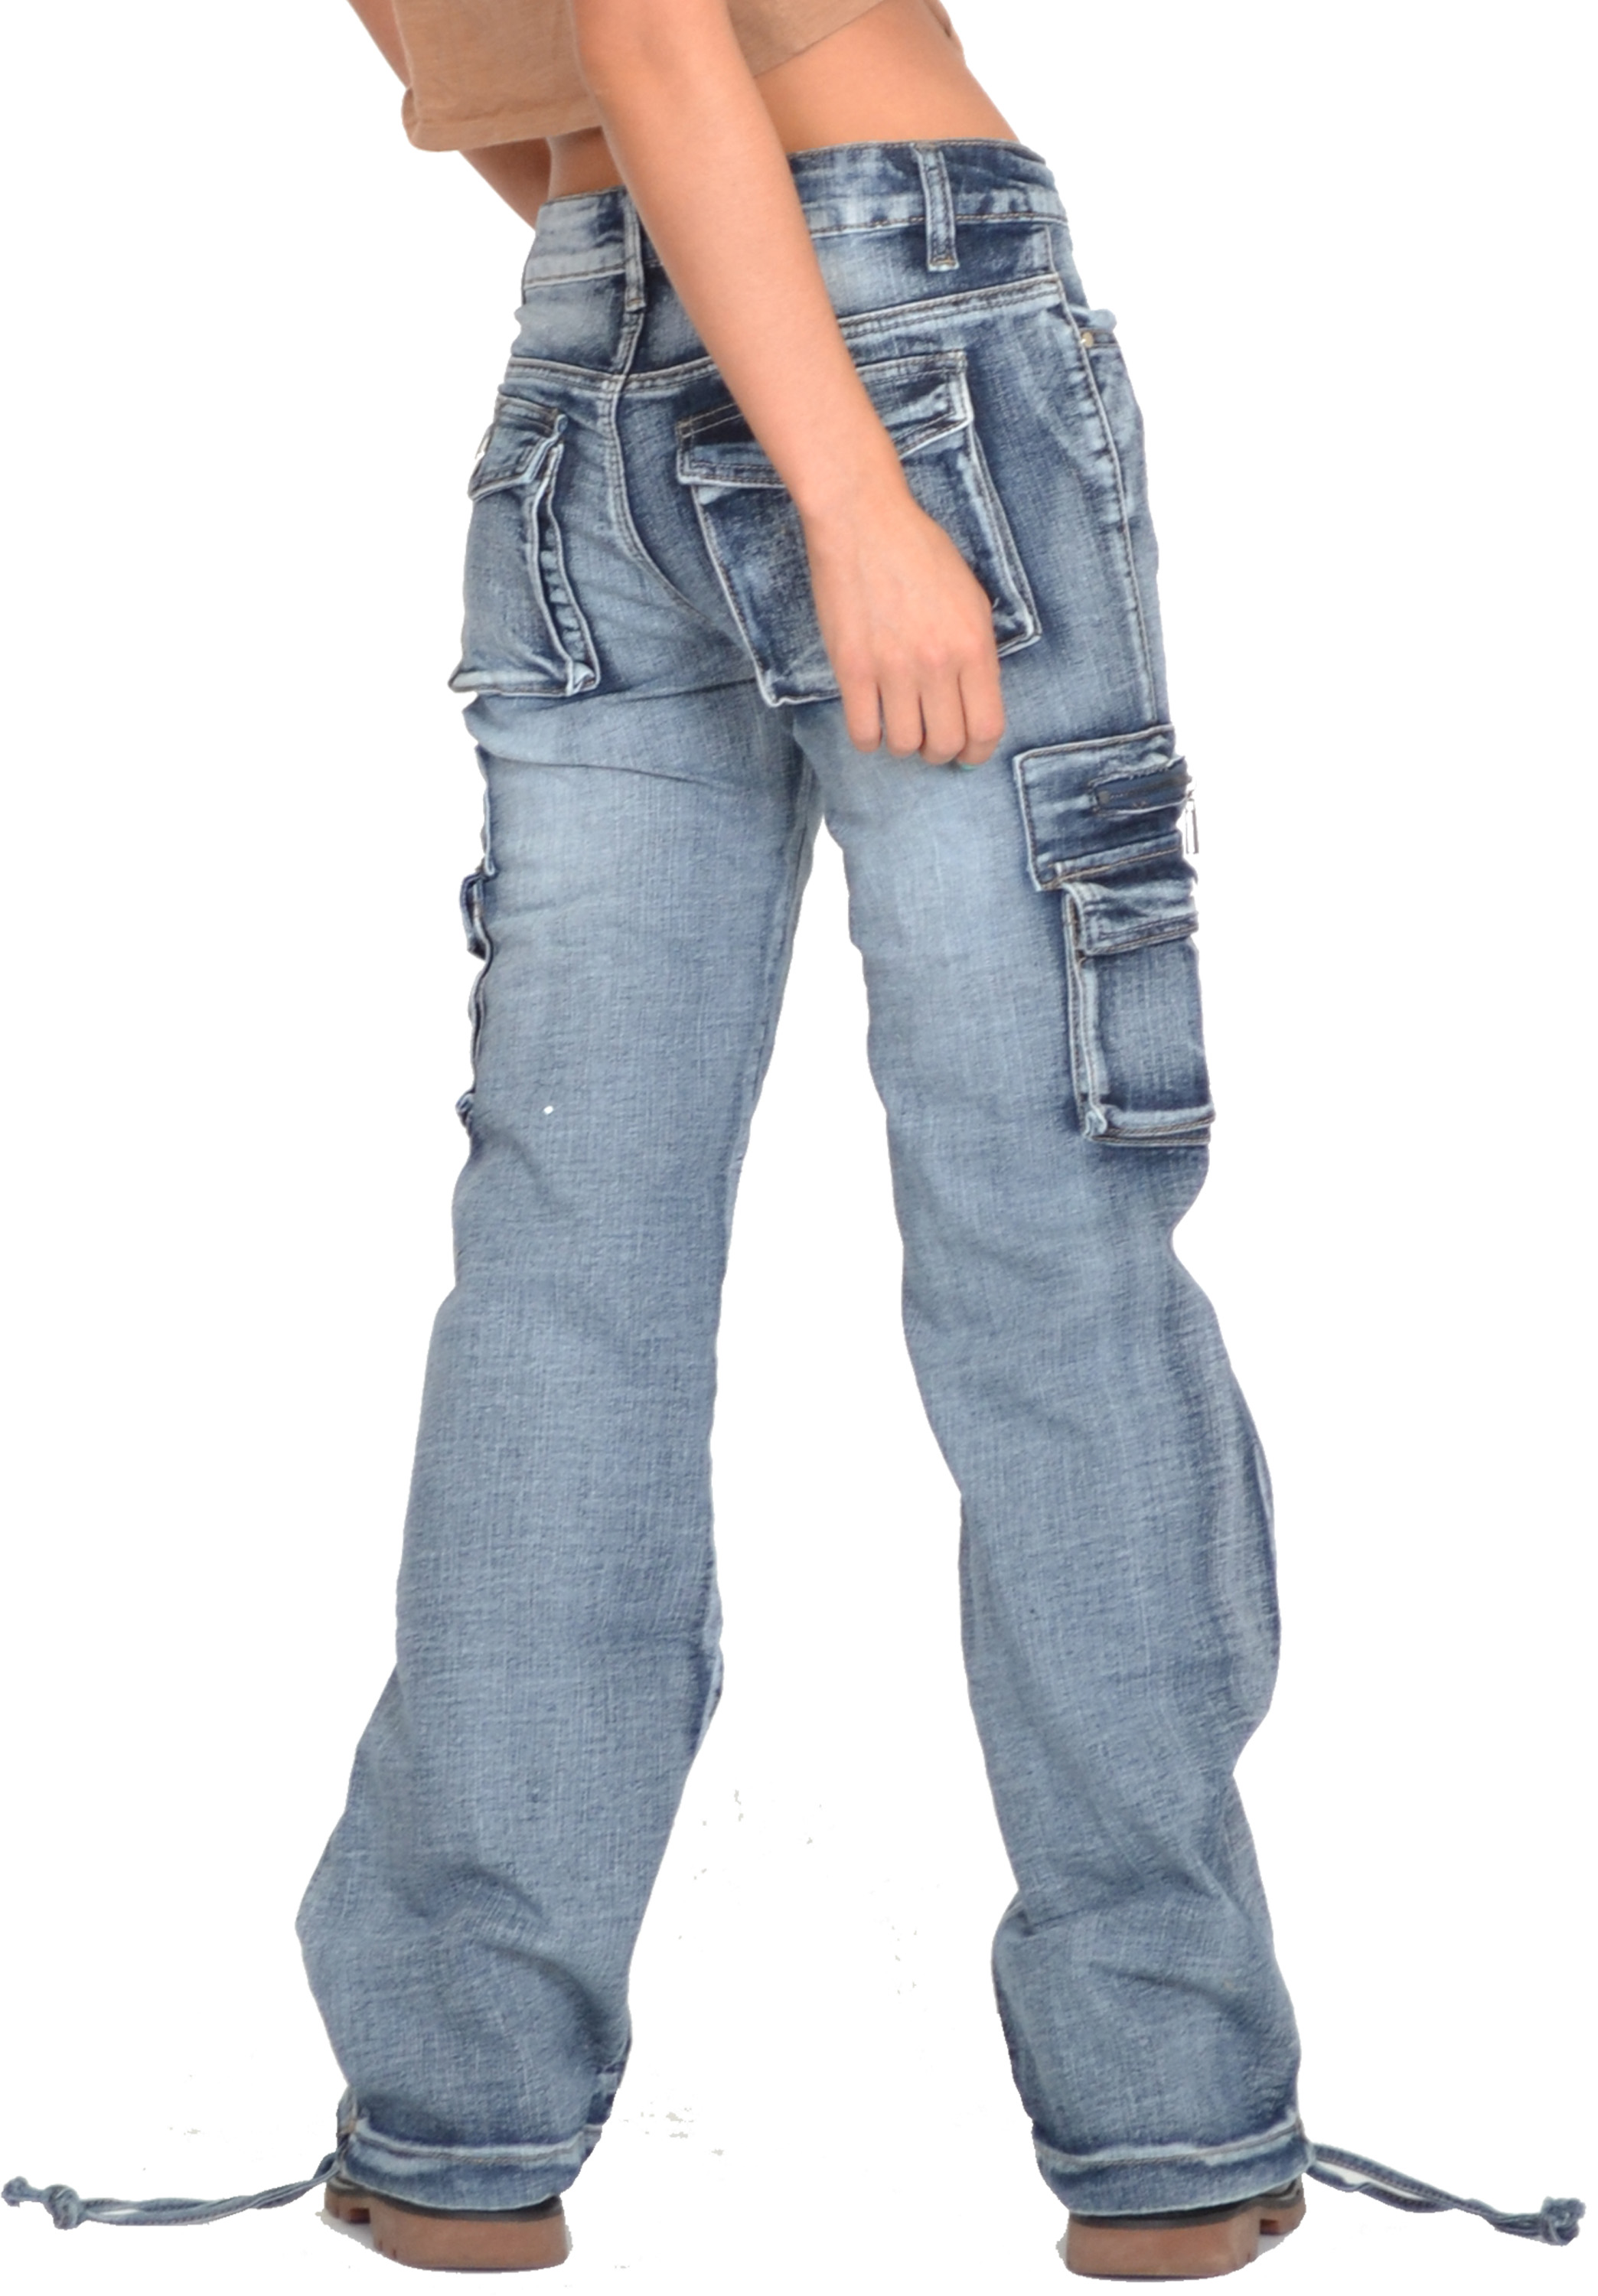 Womens Jeans With Back Flap Pockets